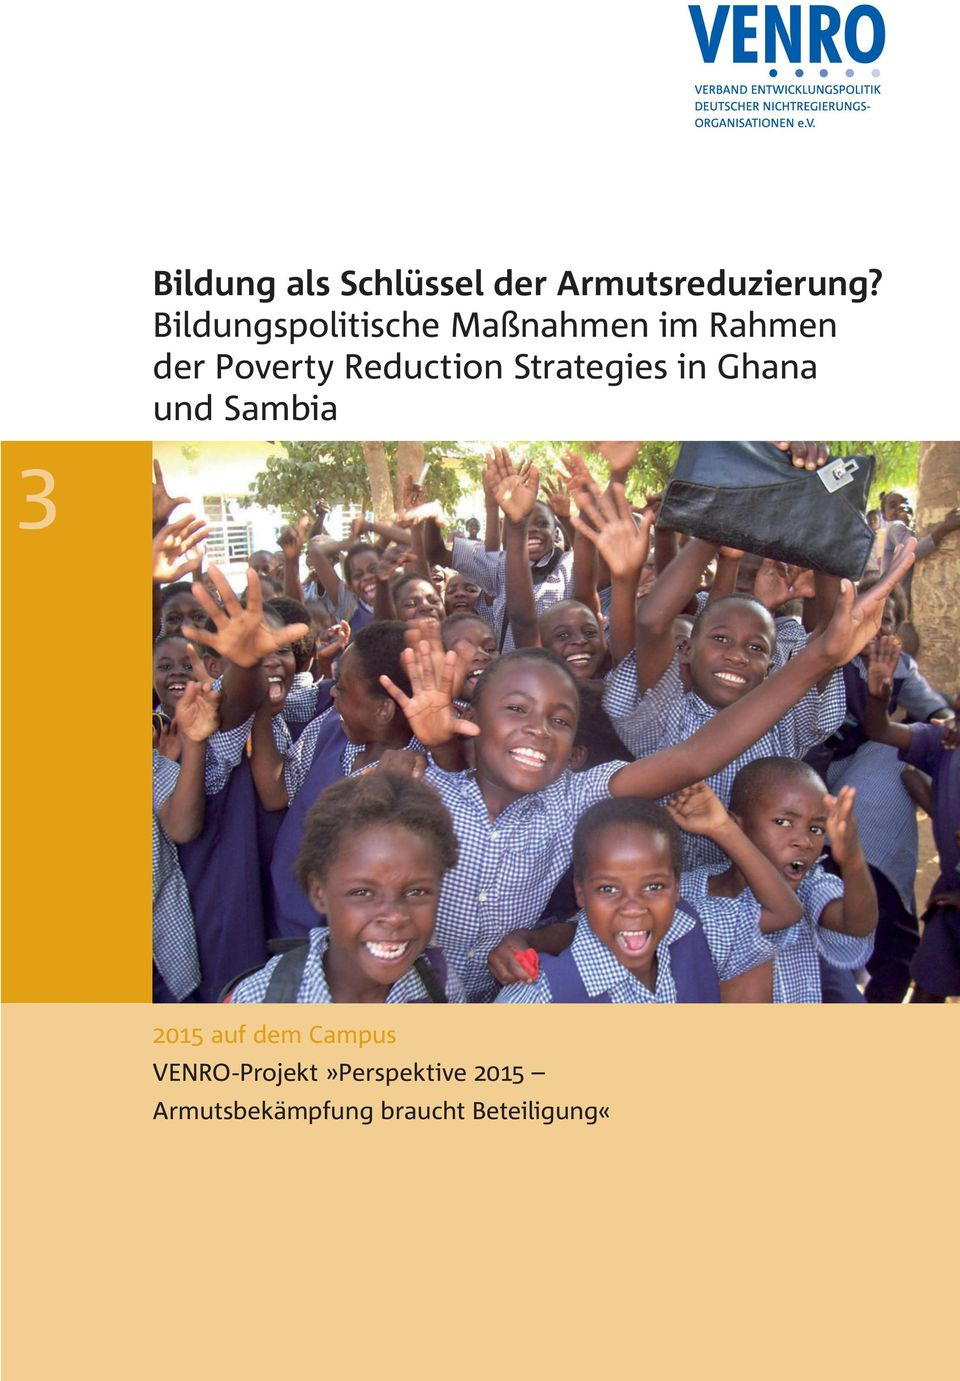 Reduction Strategies in Ghana und Sambia 3 2015 auf dem